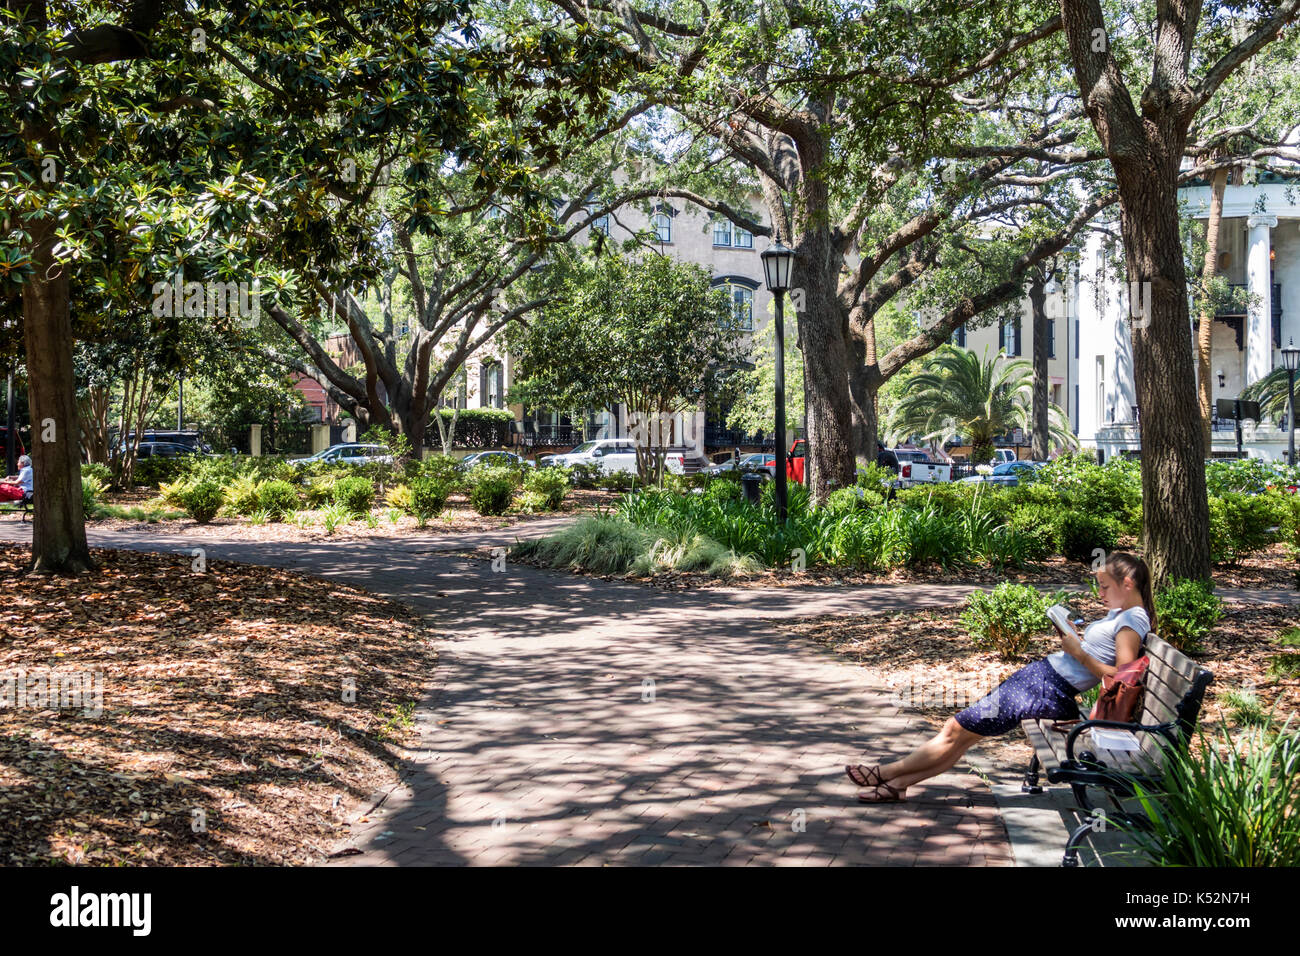 Savannah Georgia historic district Chippewa Square park bench woman reading - Stock Image